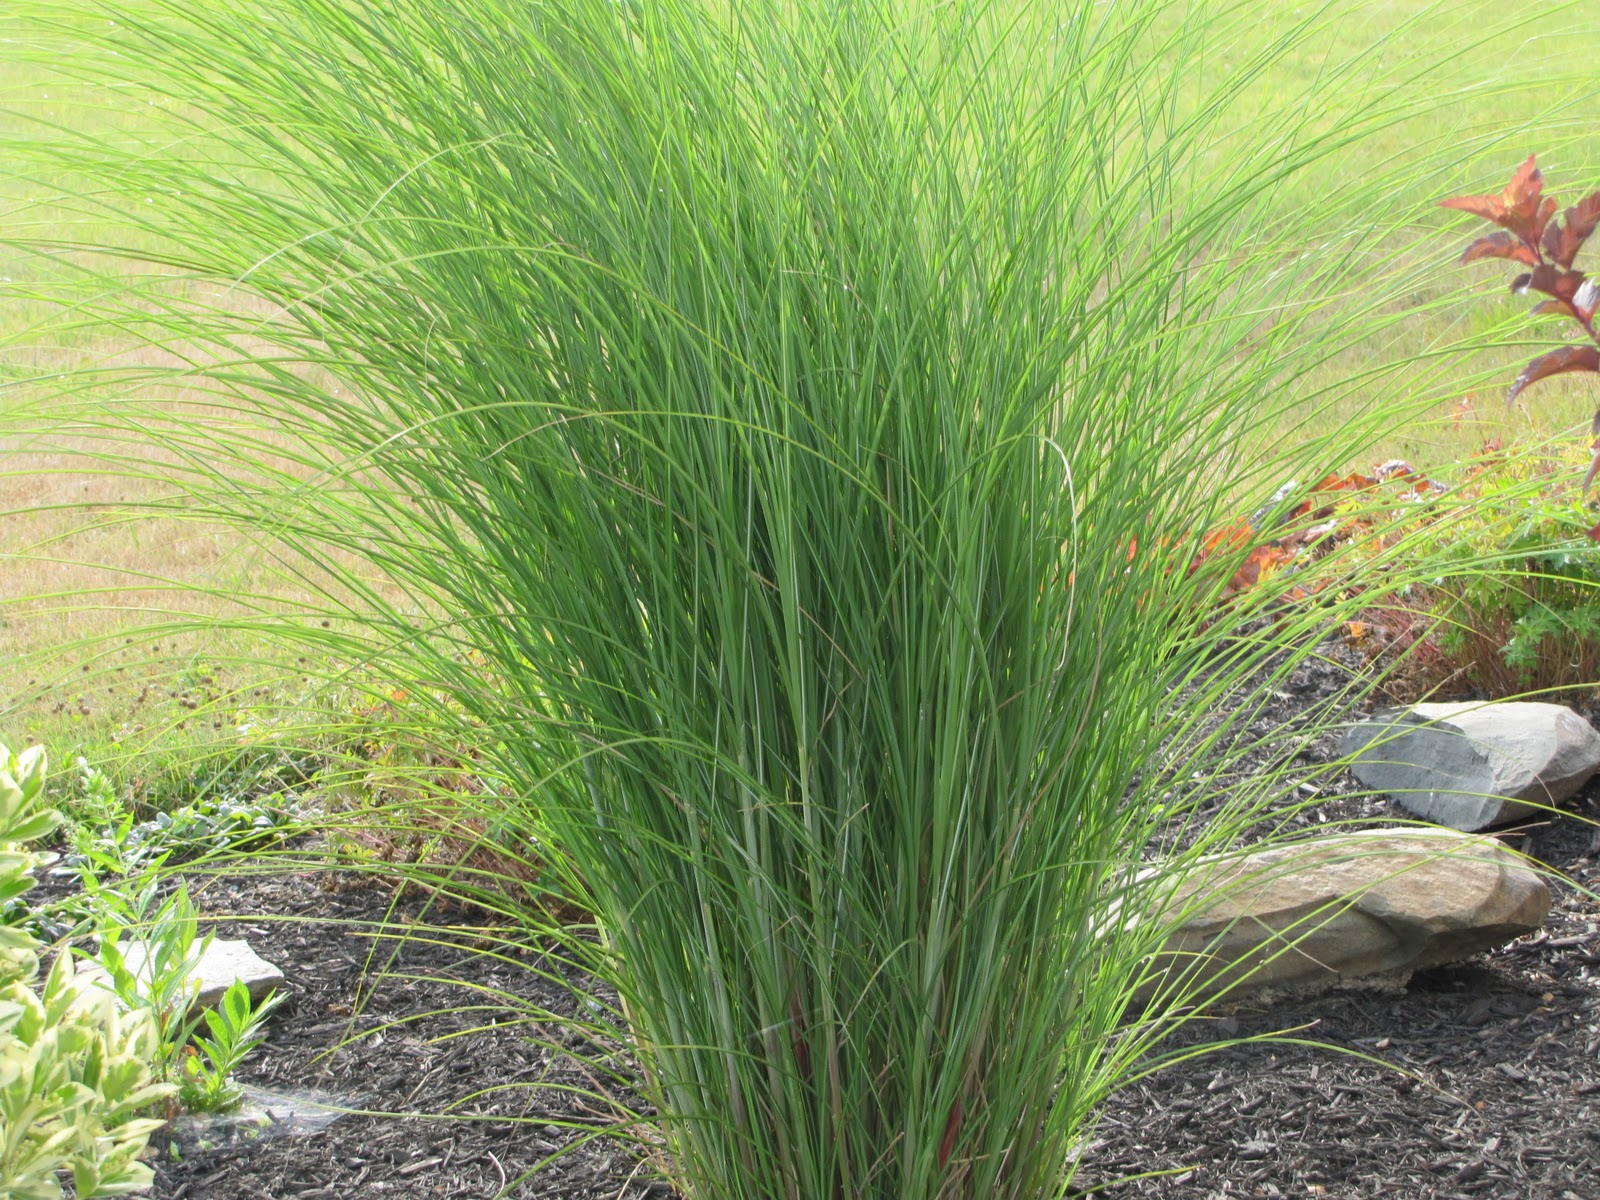 Tall Ornamental Grass Varieties Tall ornamental grasses landscaping best images about landscape on tall ornamental grasses landscaping ornamental grasses you had me at quot hello an obsessive workwithnaturefo